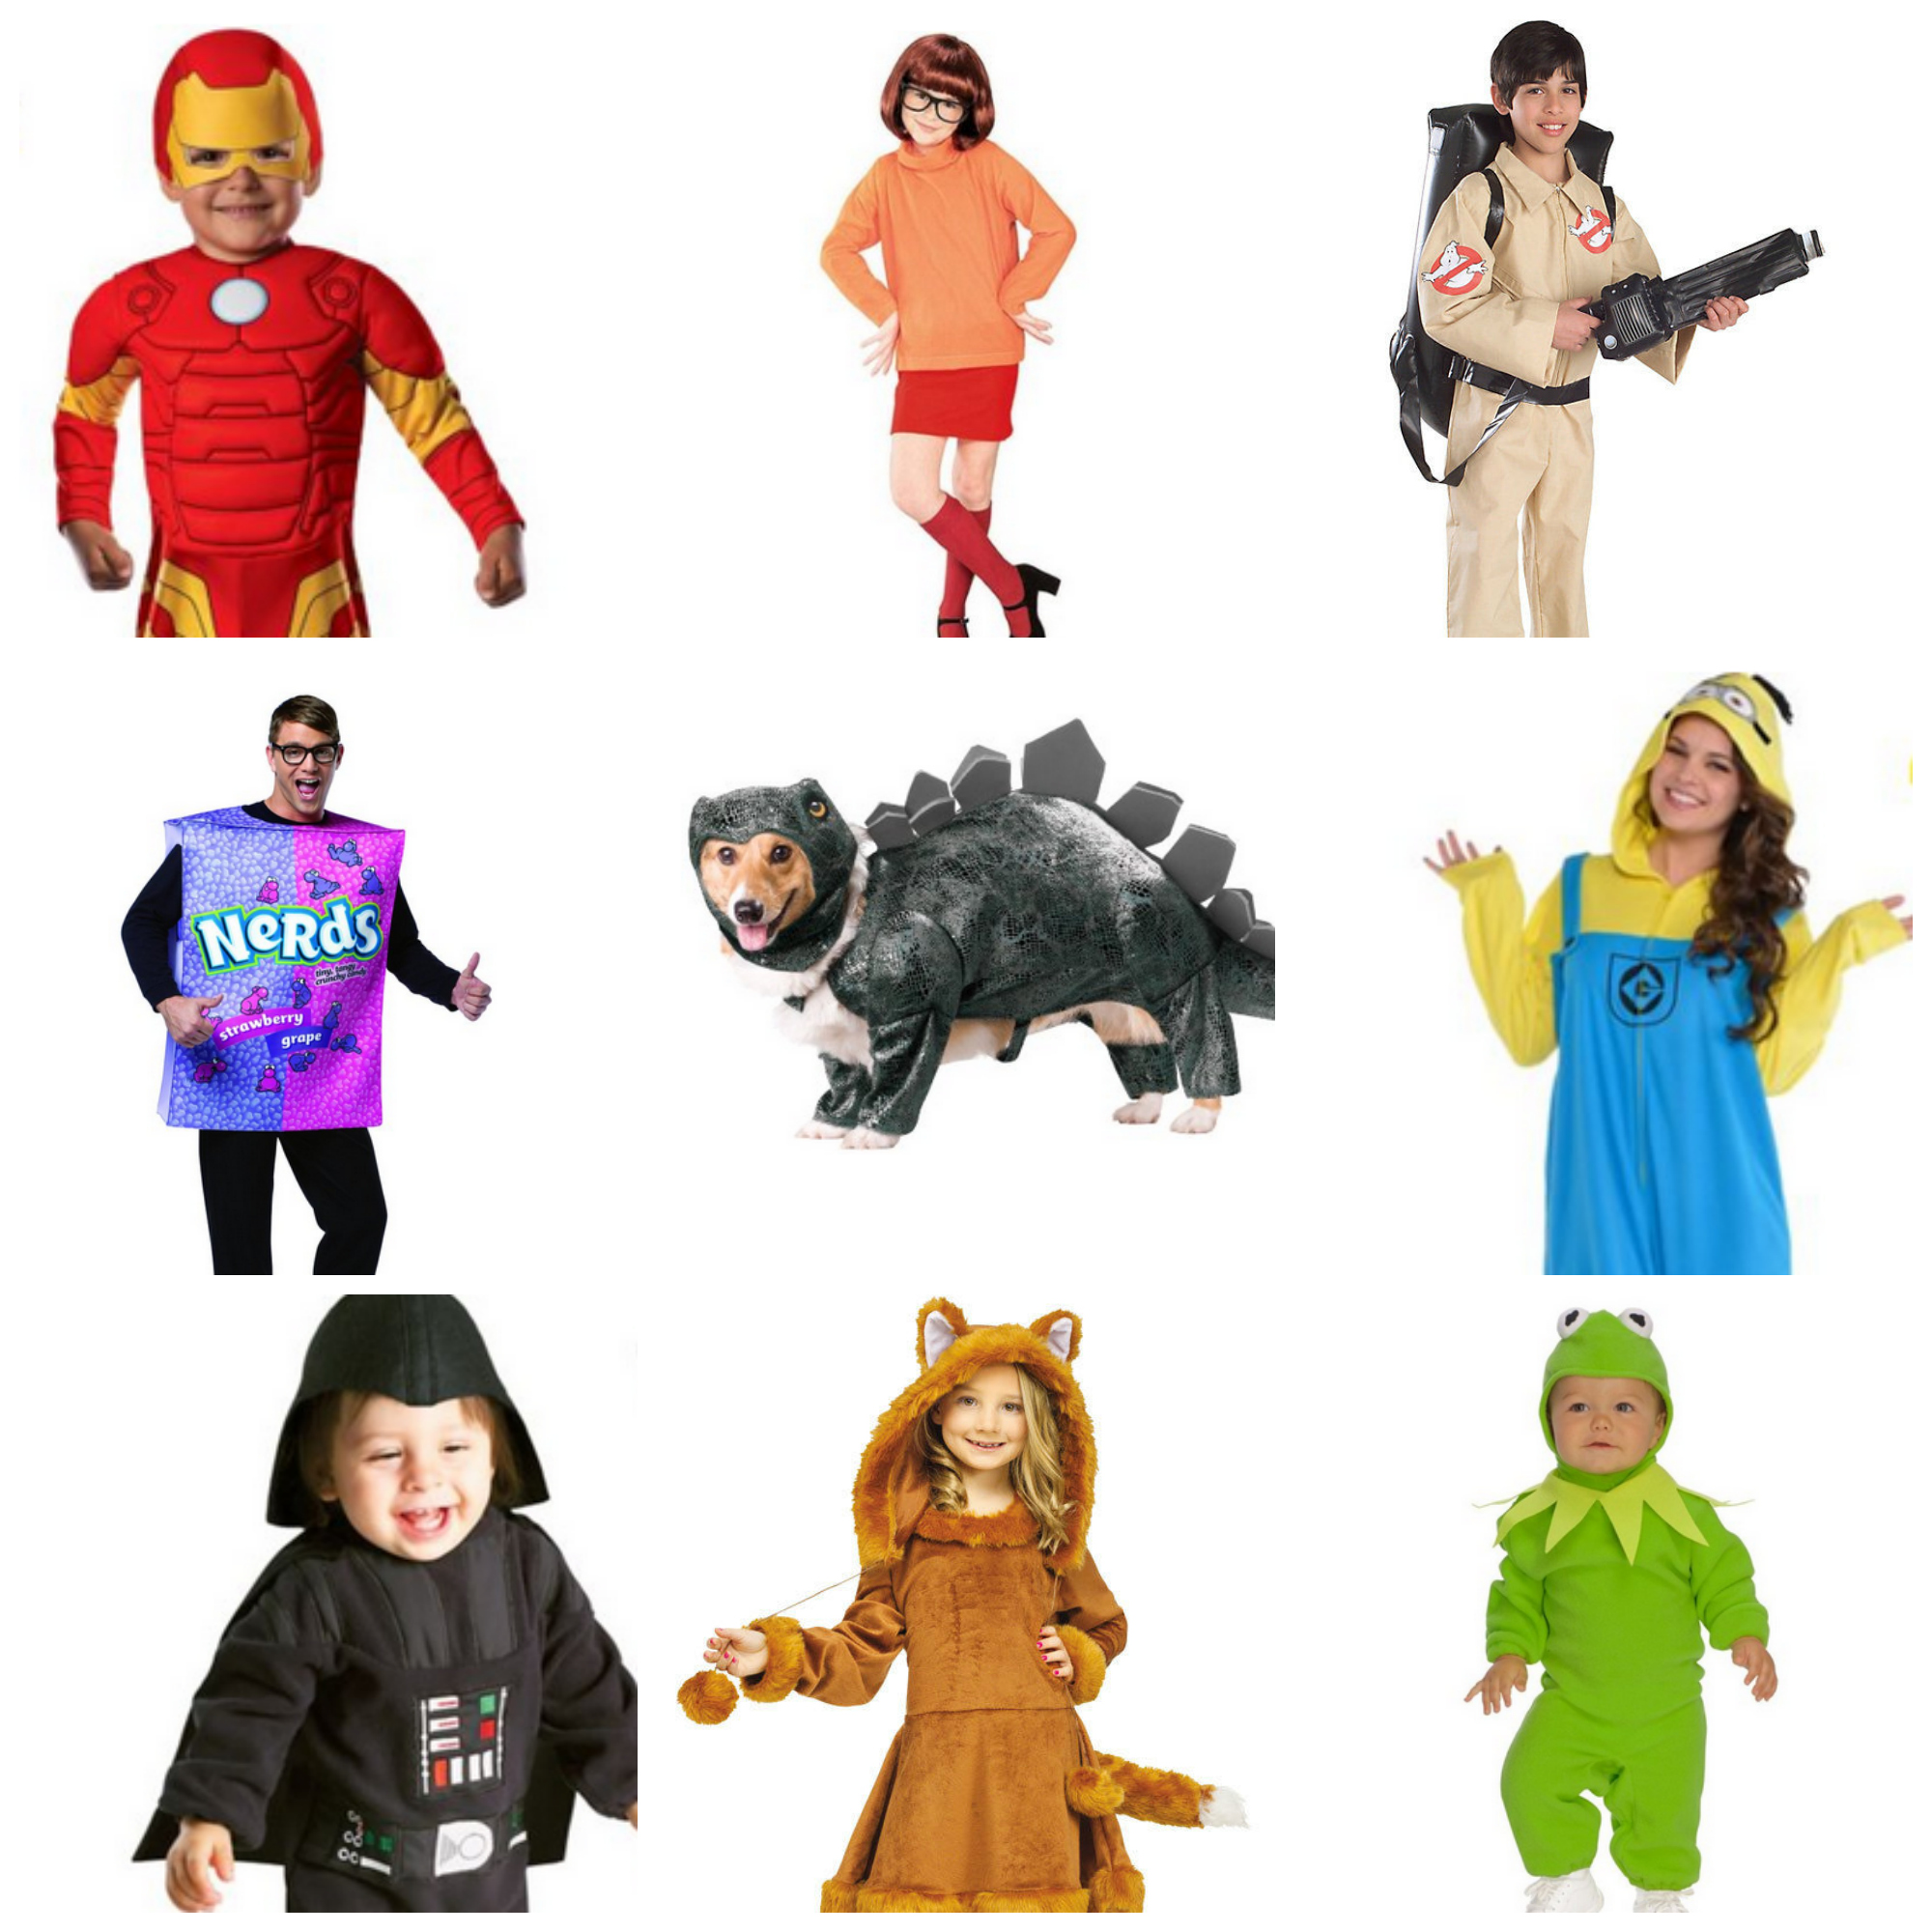 Family Halloween Costume Ideas  sc 1 st  AOL.com & 10 best Halloween costume ideas for families - AOL Lifestyle